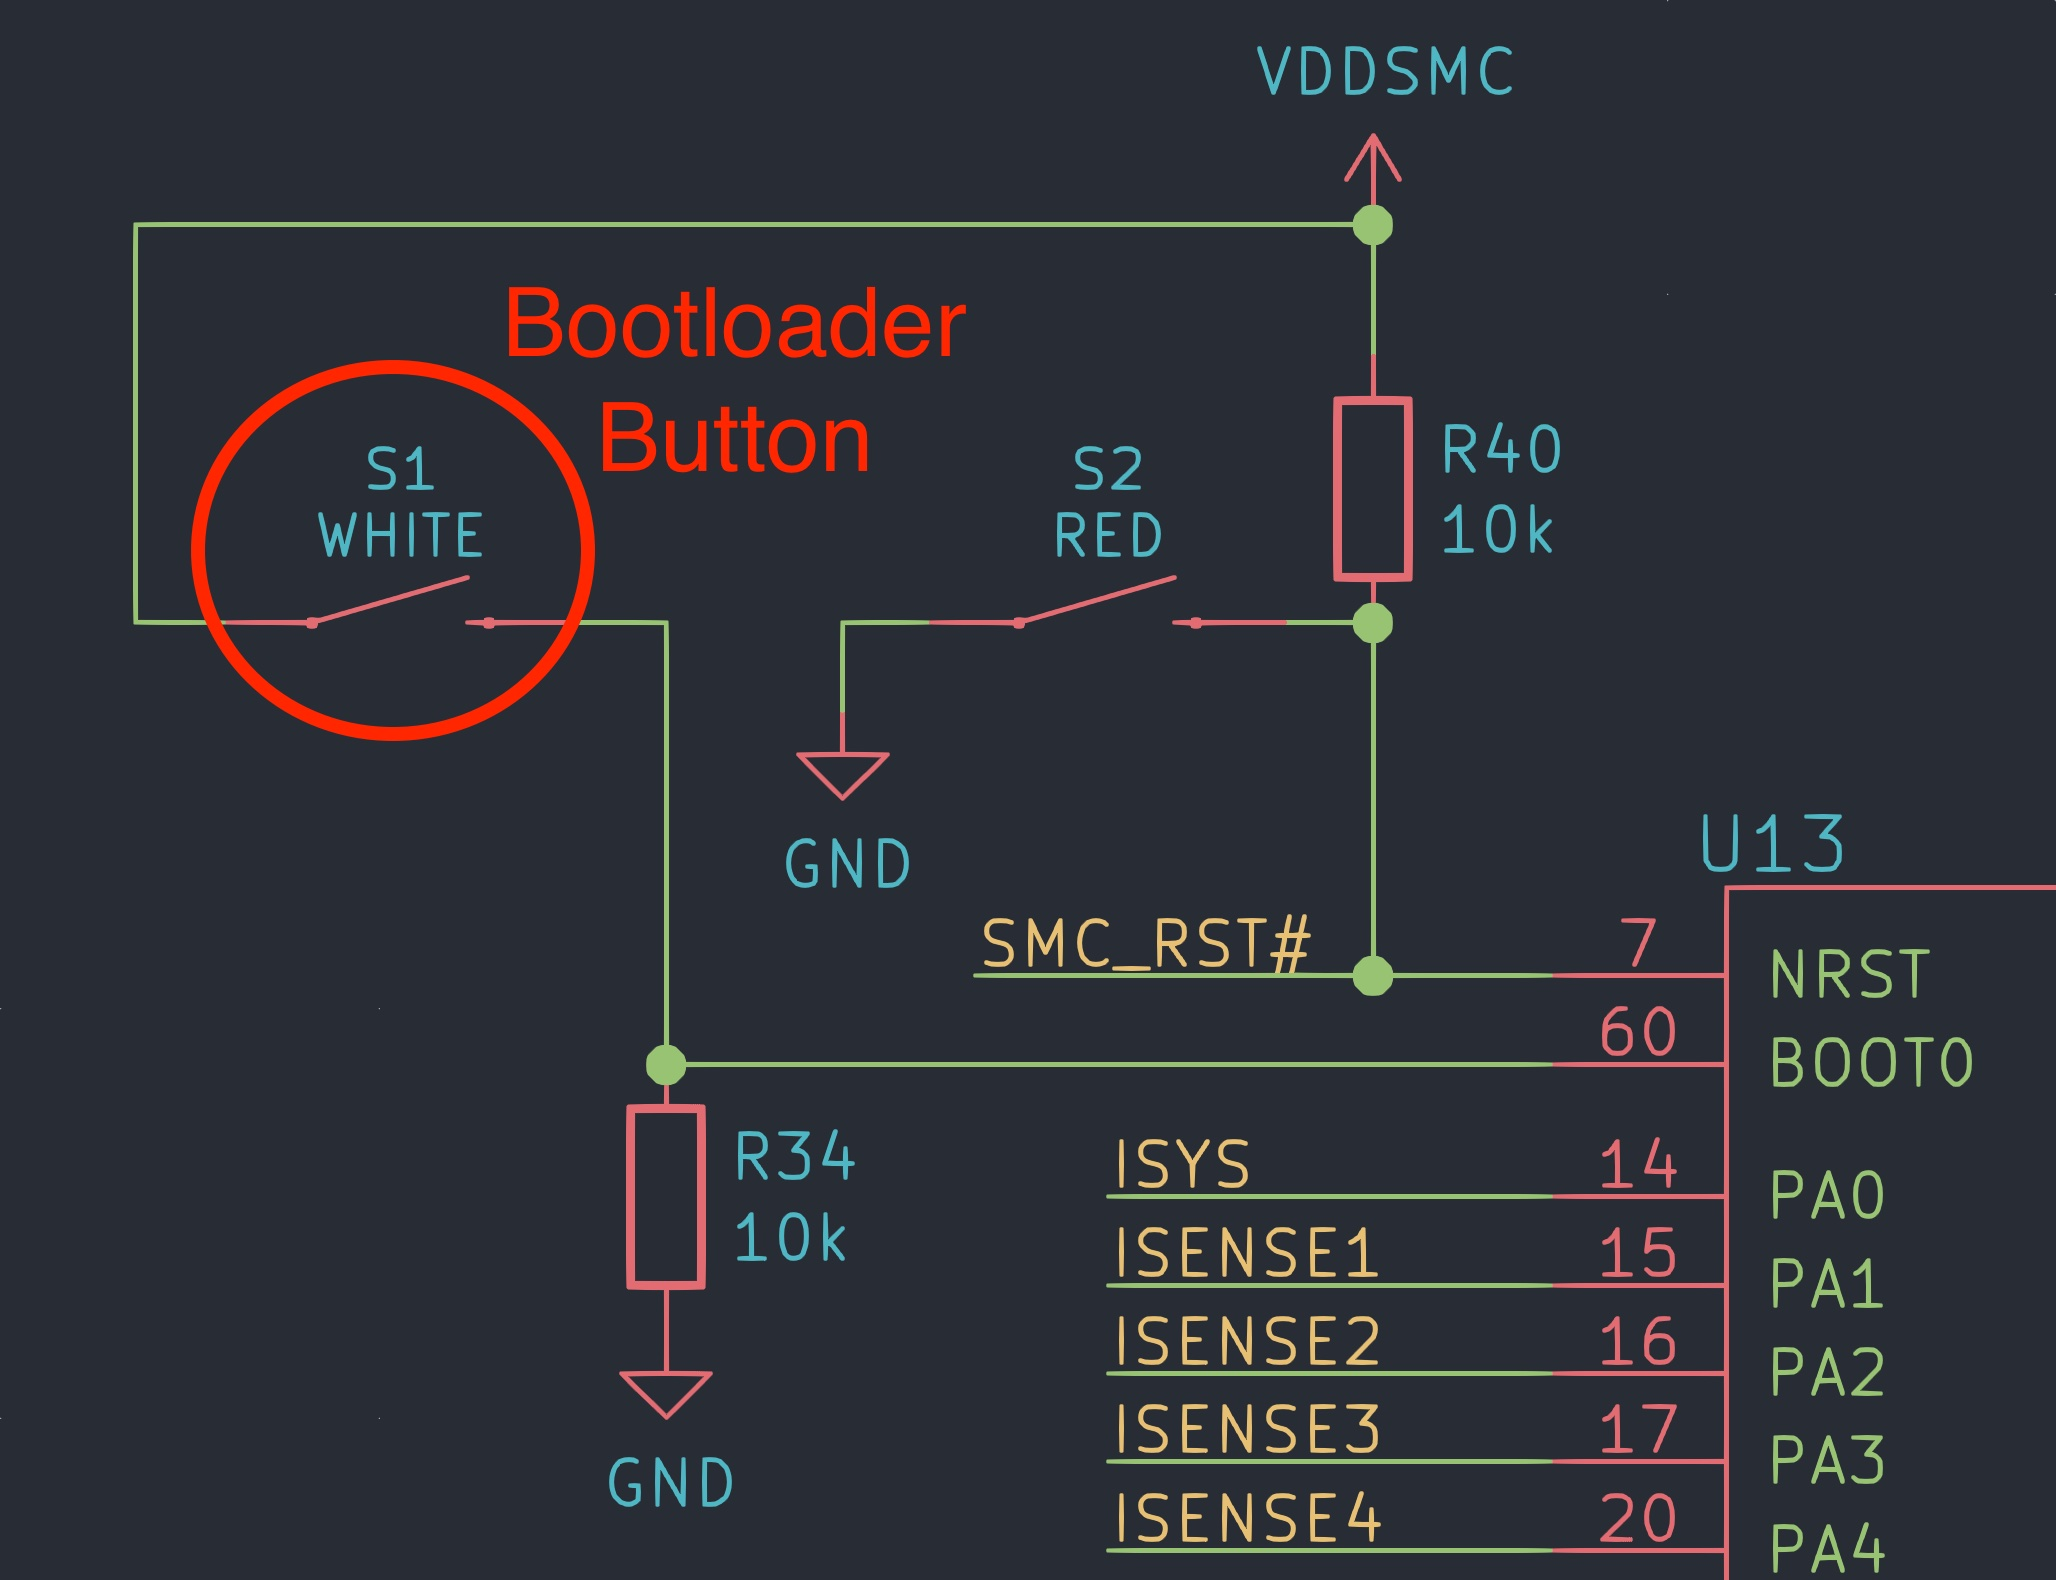 Gameslab schematic bootloader button